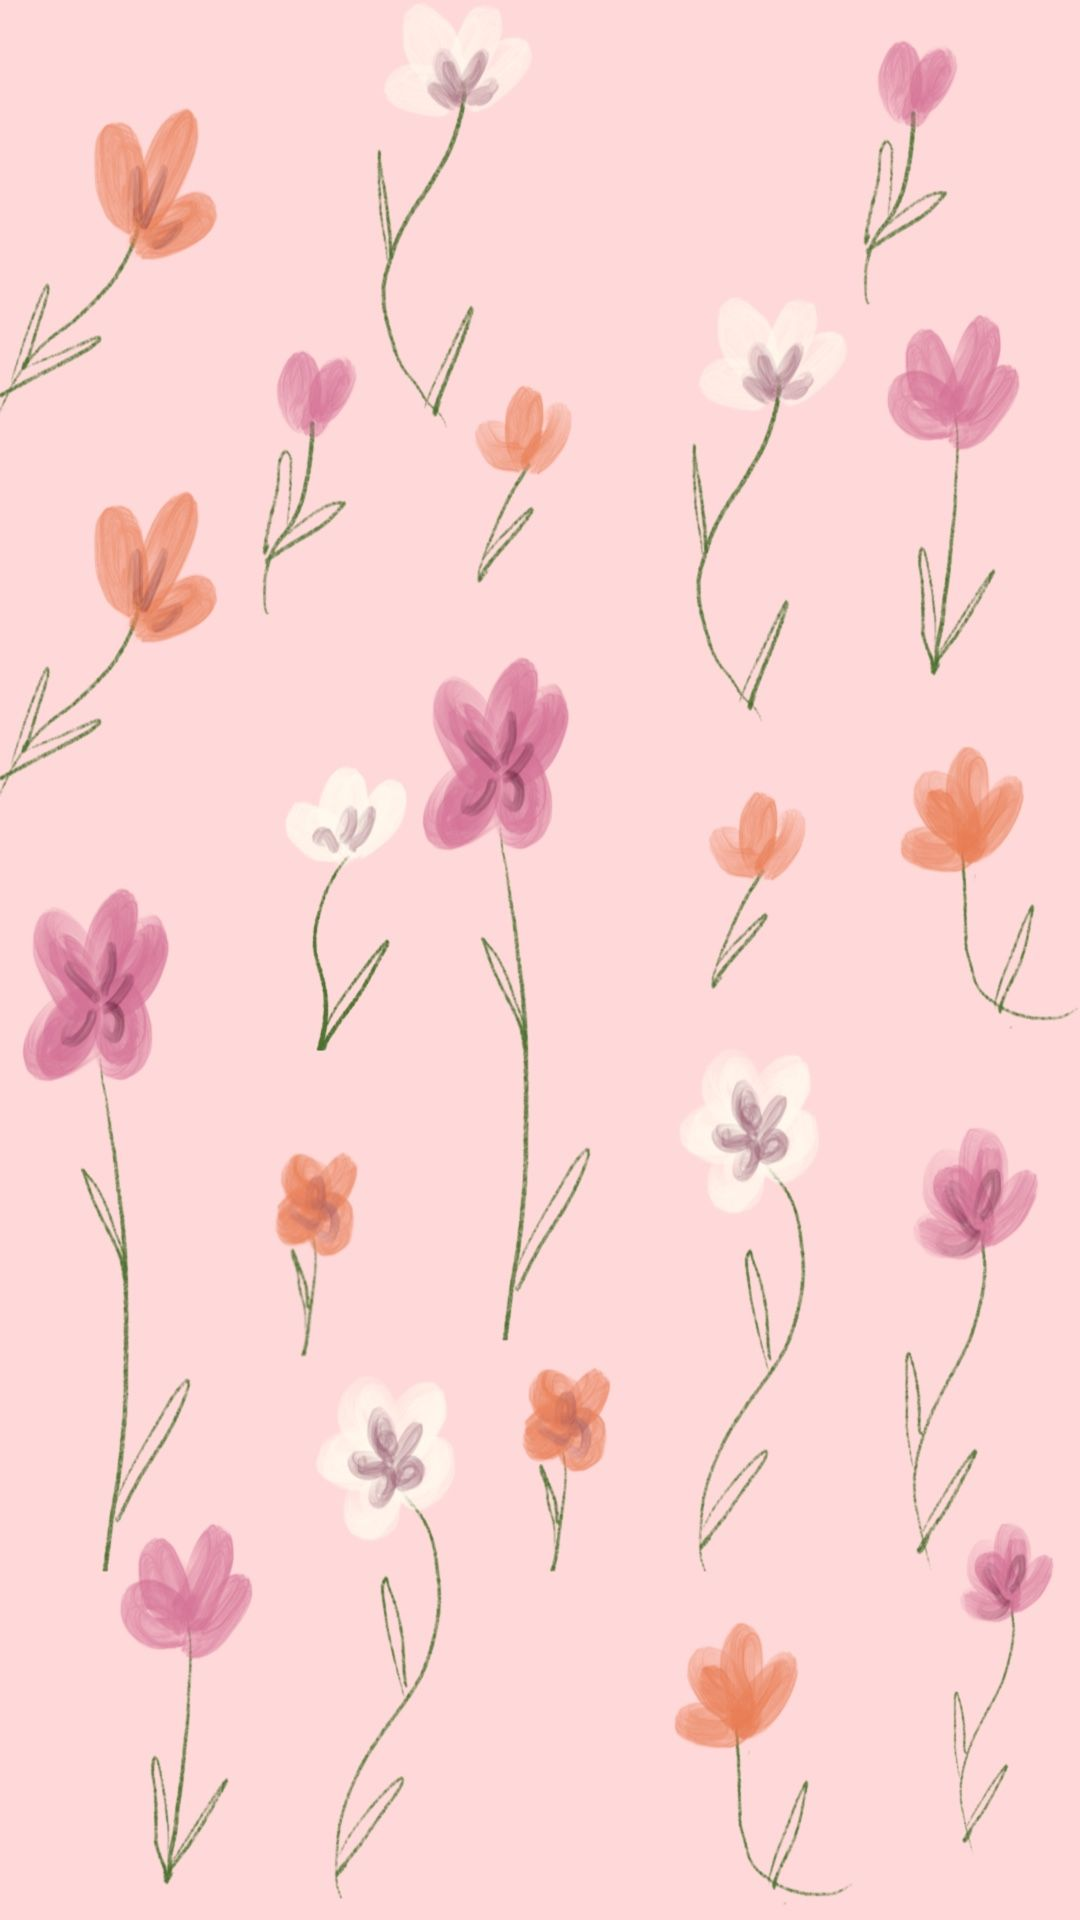 Floral Background Cherry Blossom Wall Art Floral Background Watercolor Background